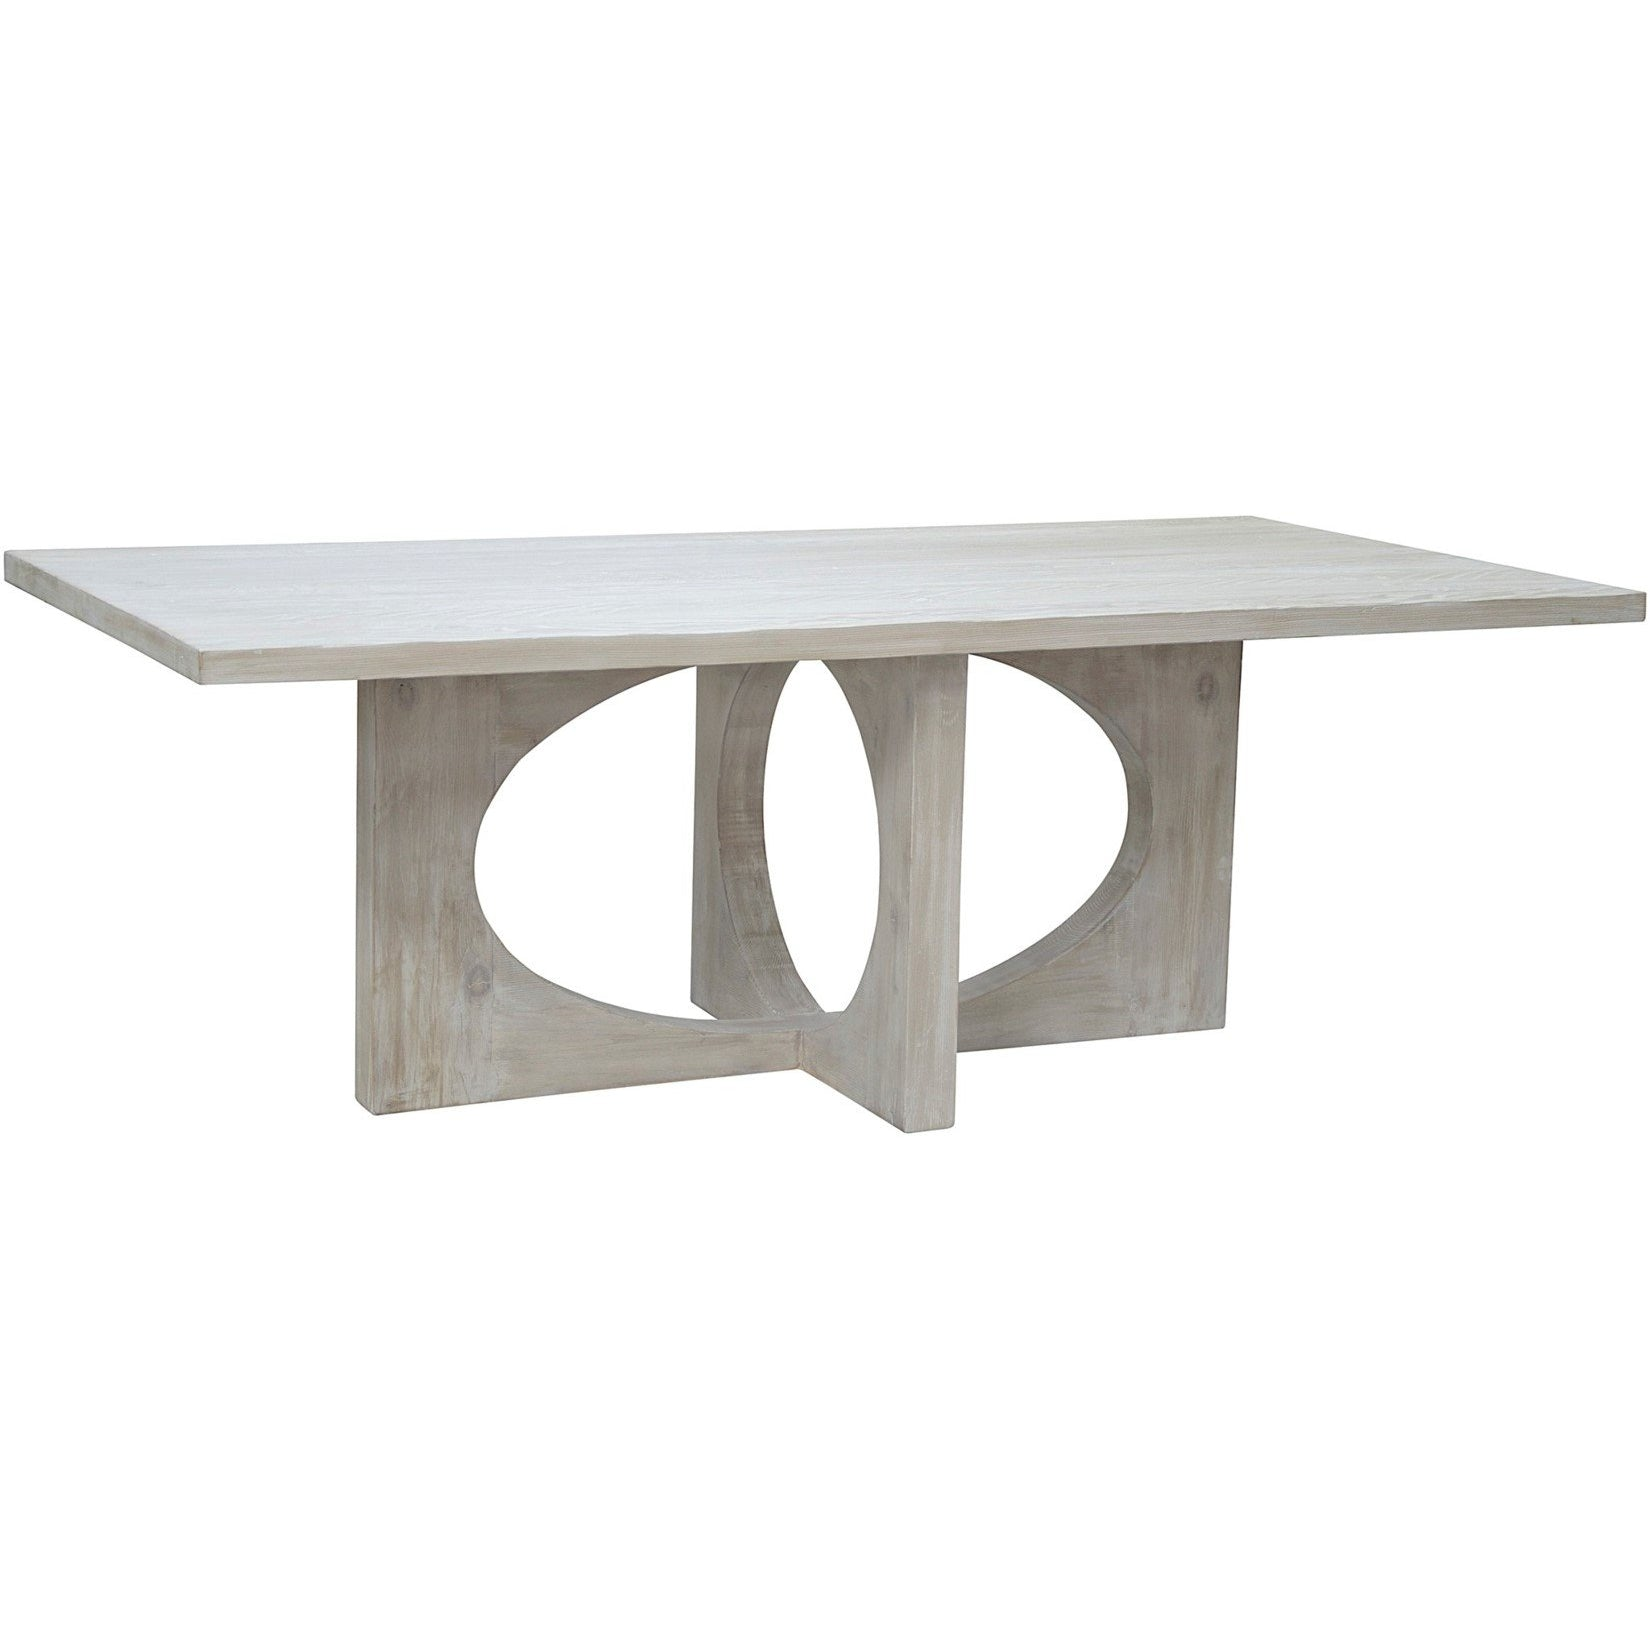 CFC Furniture Buttercup Dining Table - Large